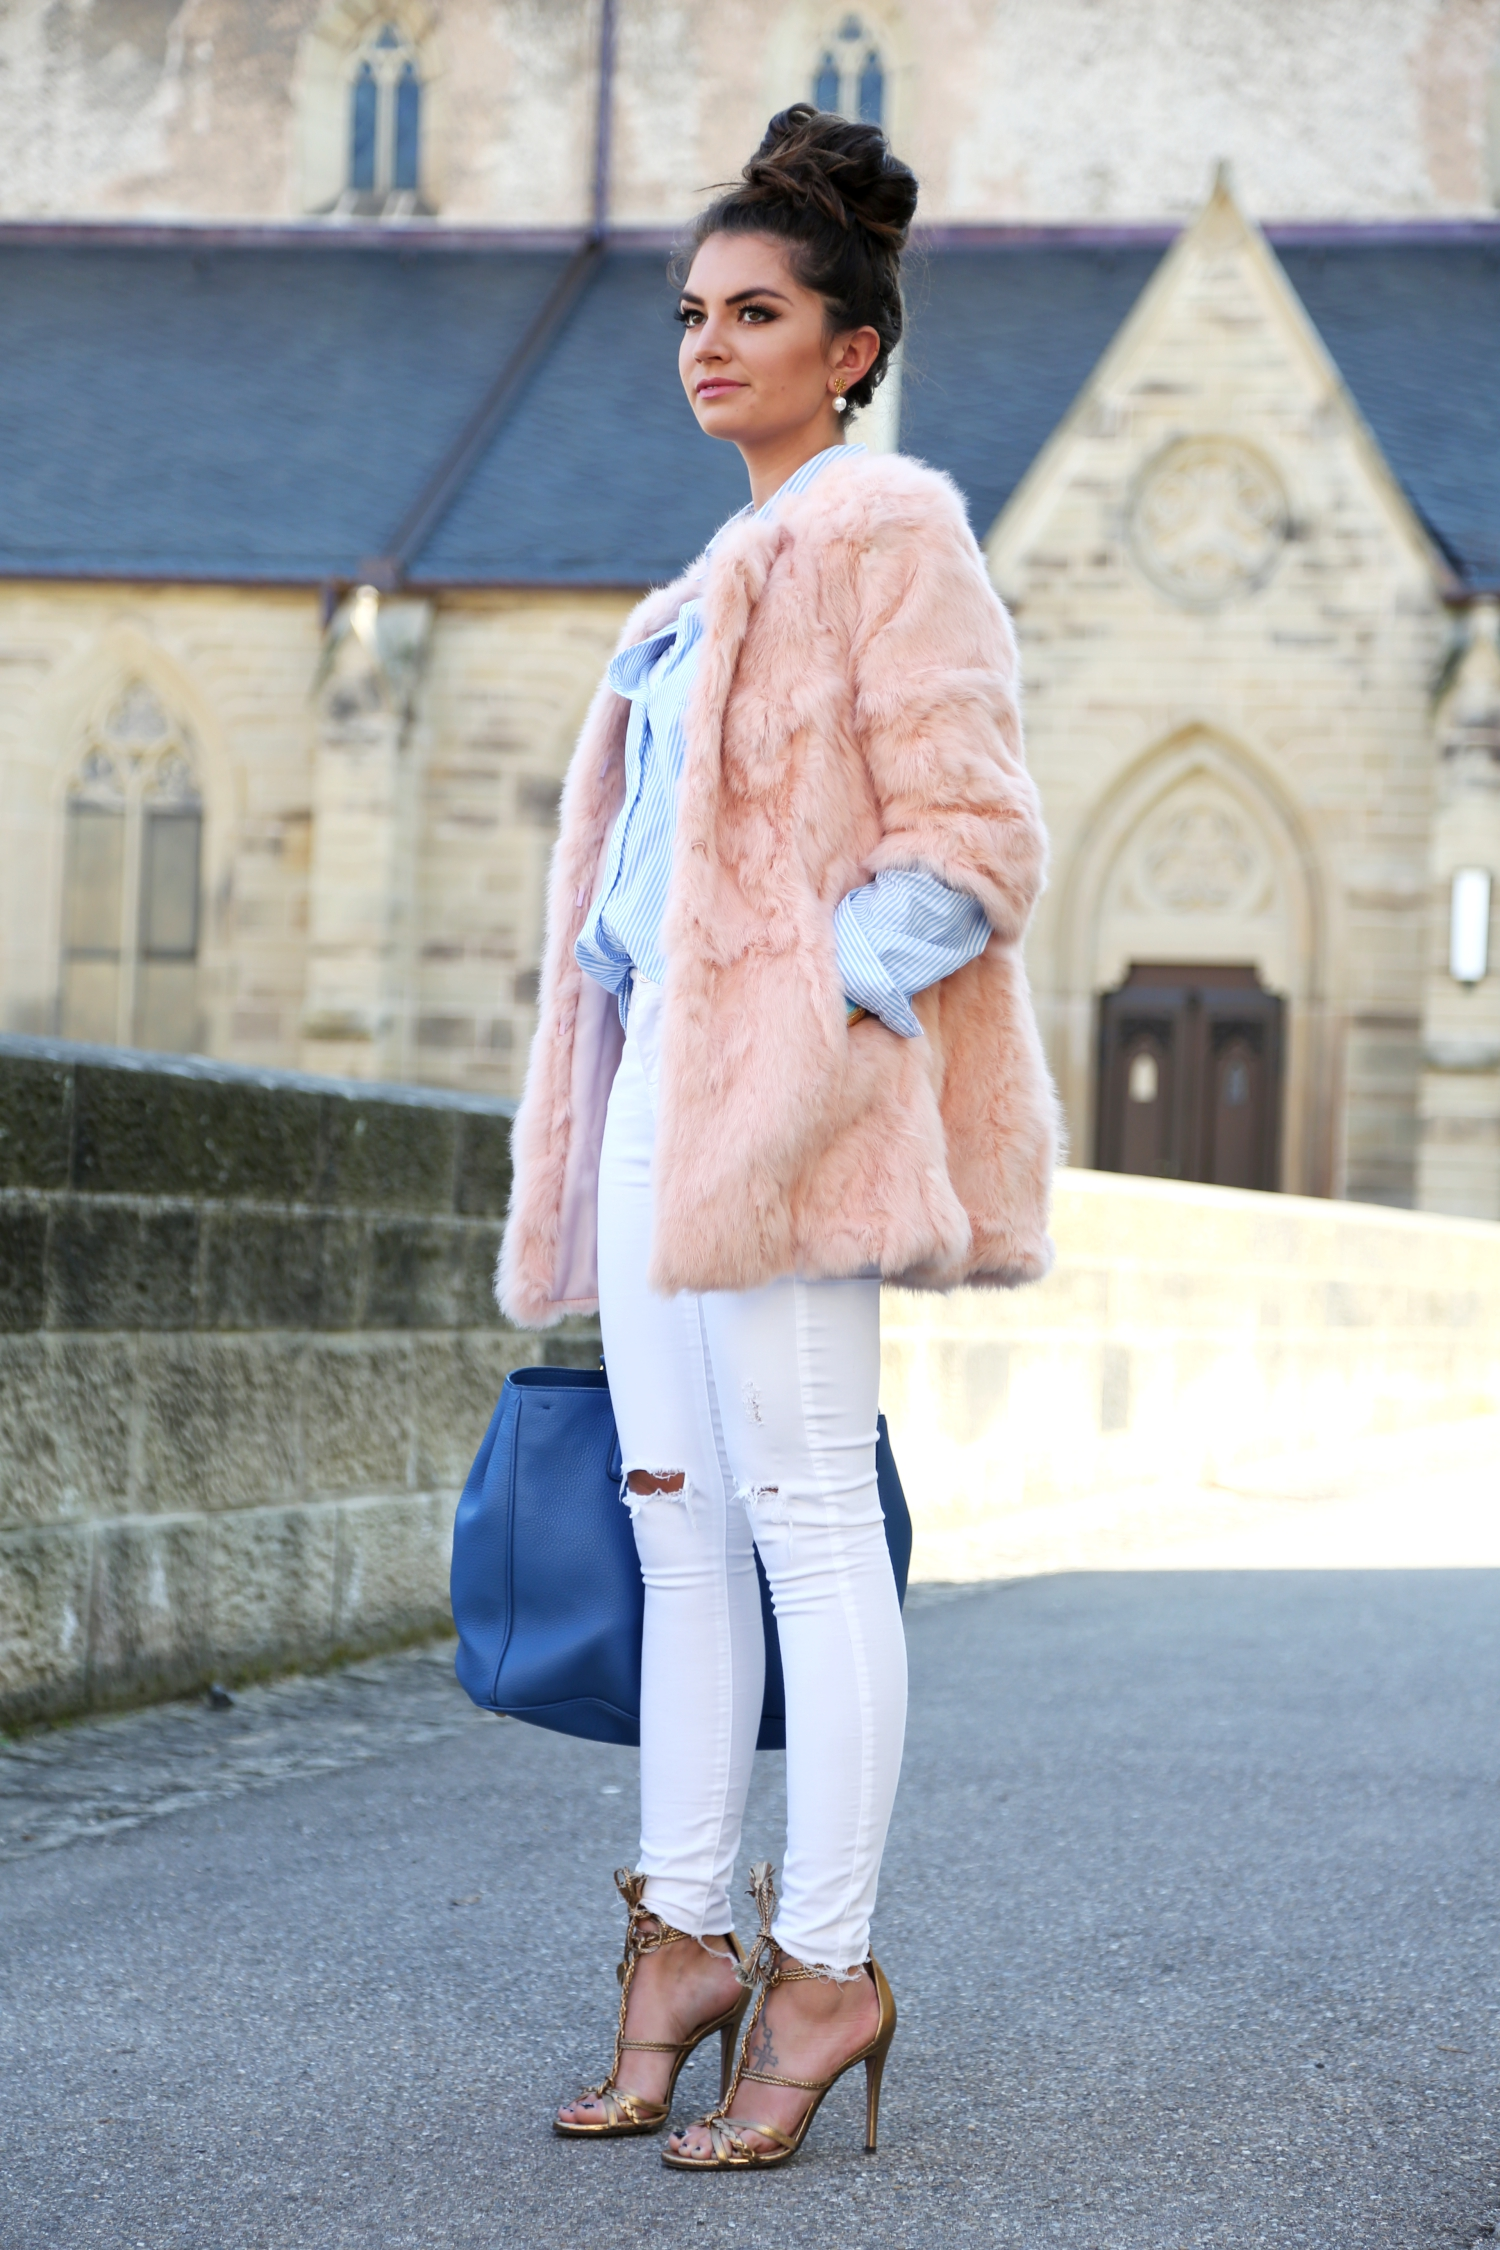 outfit-pastels-spring-german-fashionblogger-white-ripped-jeans-prada-bag-golden-sandals